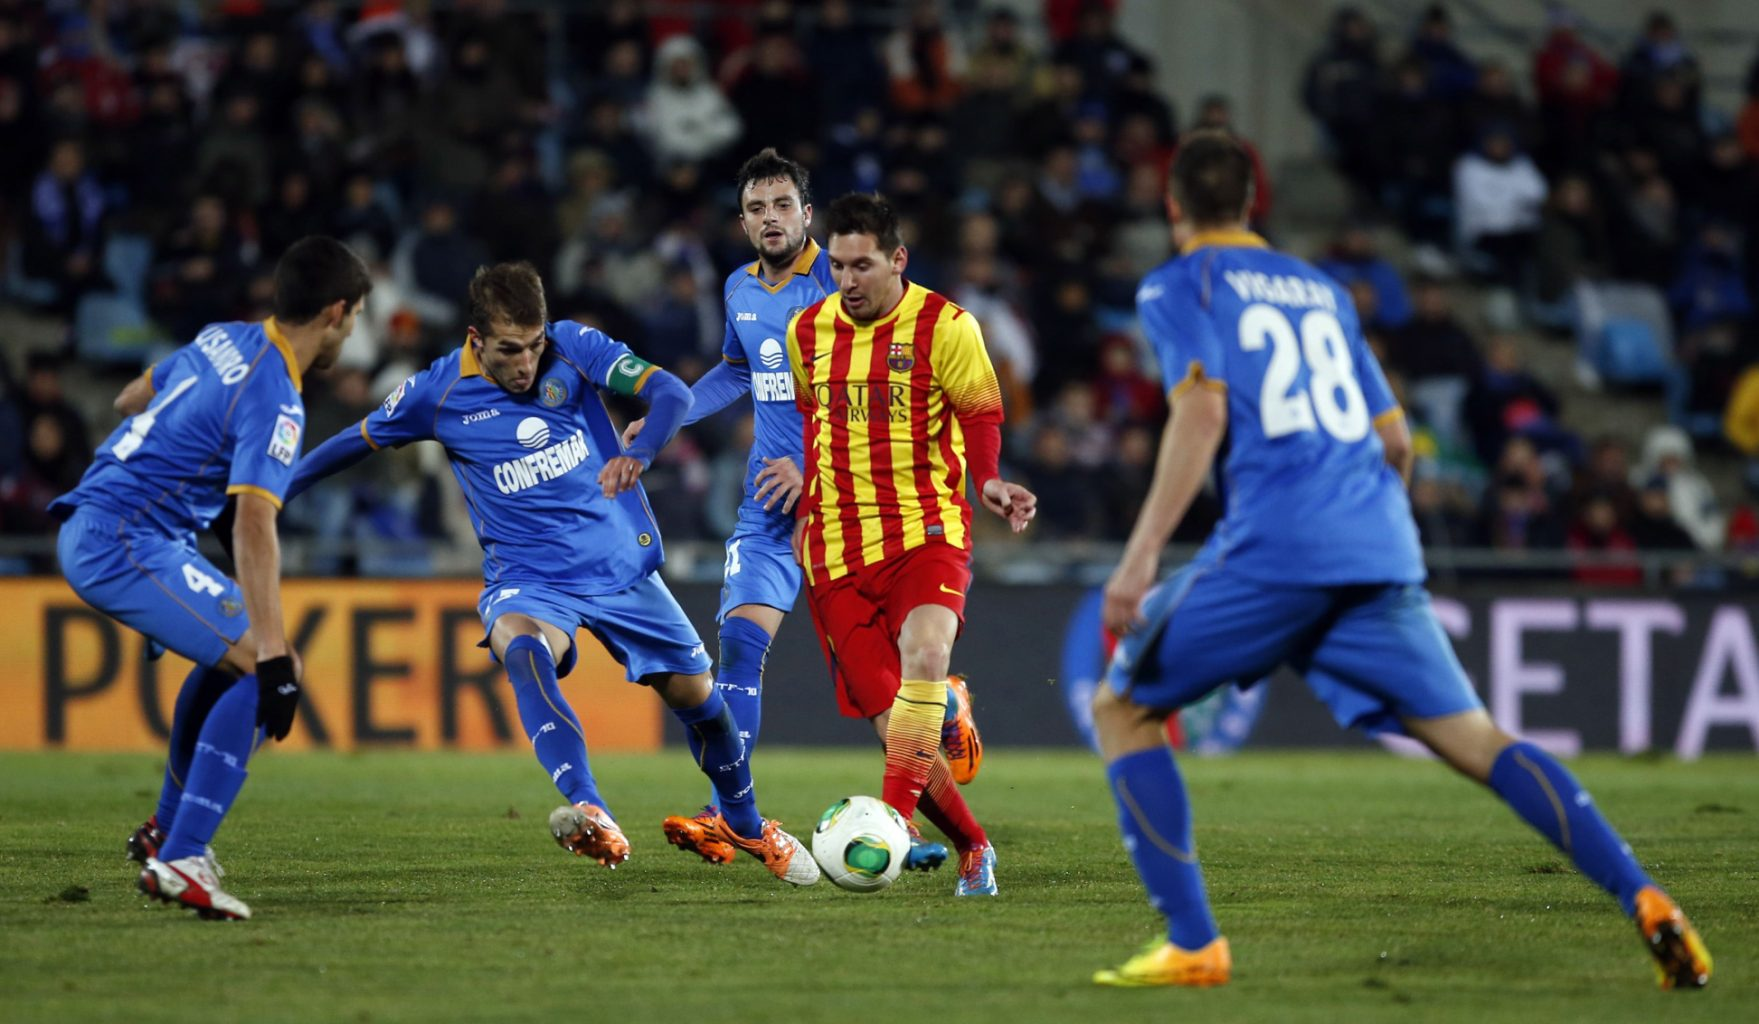 Lionel Messi against 4 defenders, in Getafe vs Barcelona